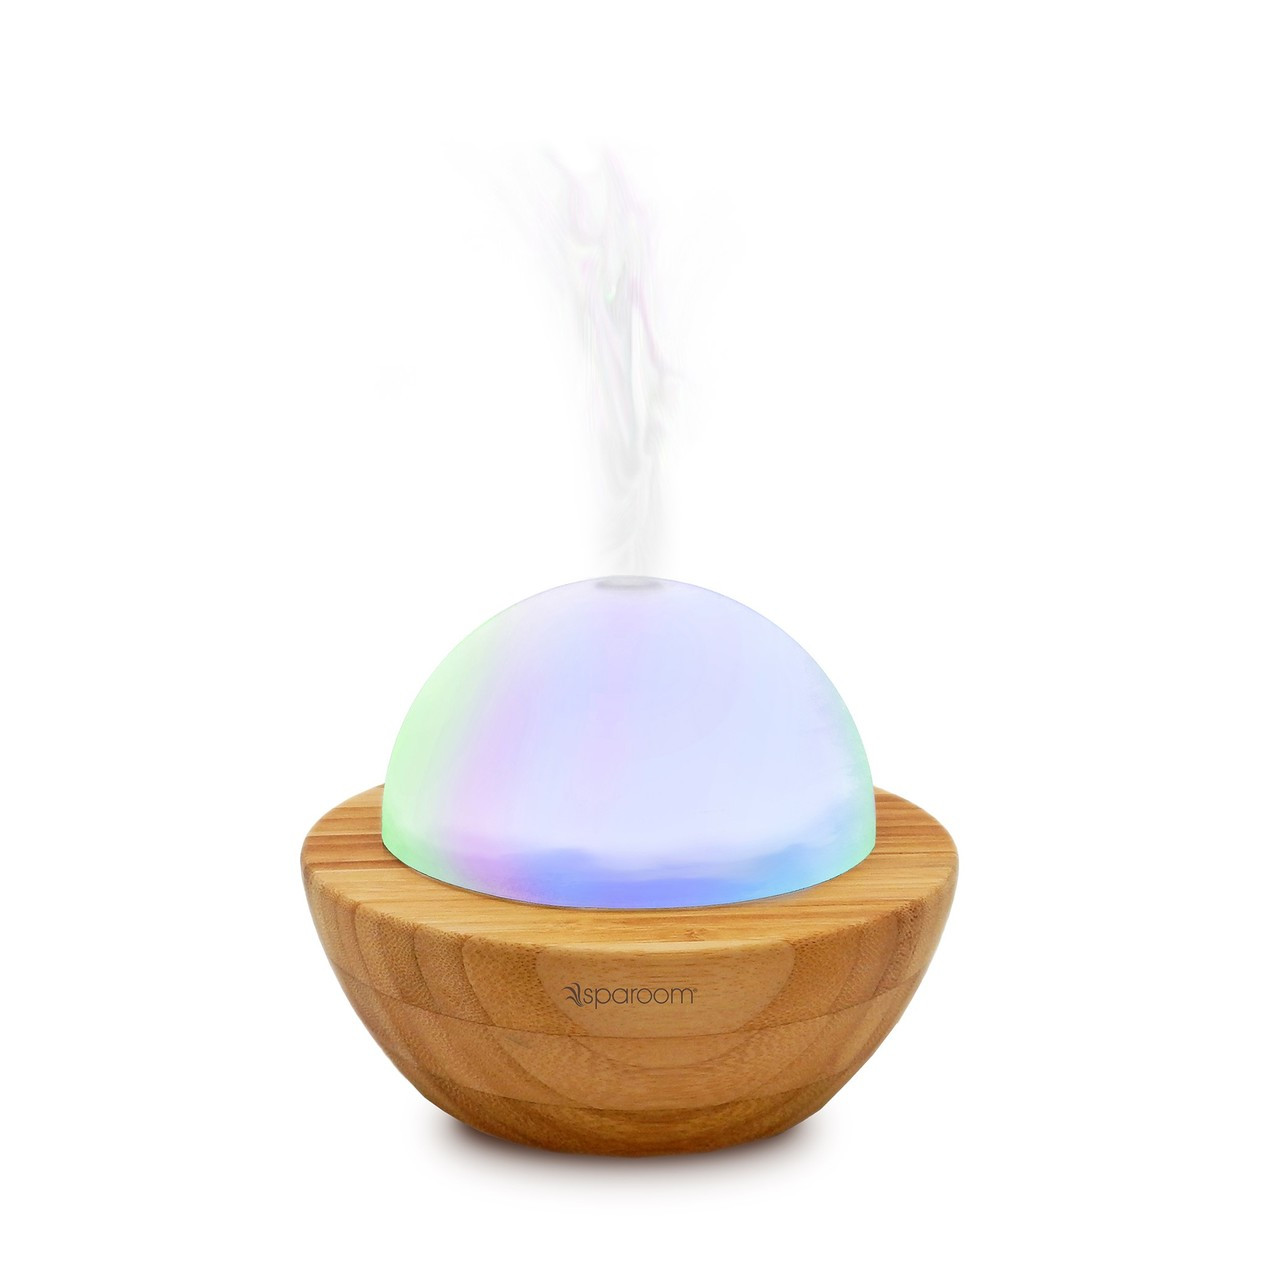 Aromaglobe Glass And Bamboo Ultrasonic Essential Oil Diffuser For Aromatherapy